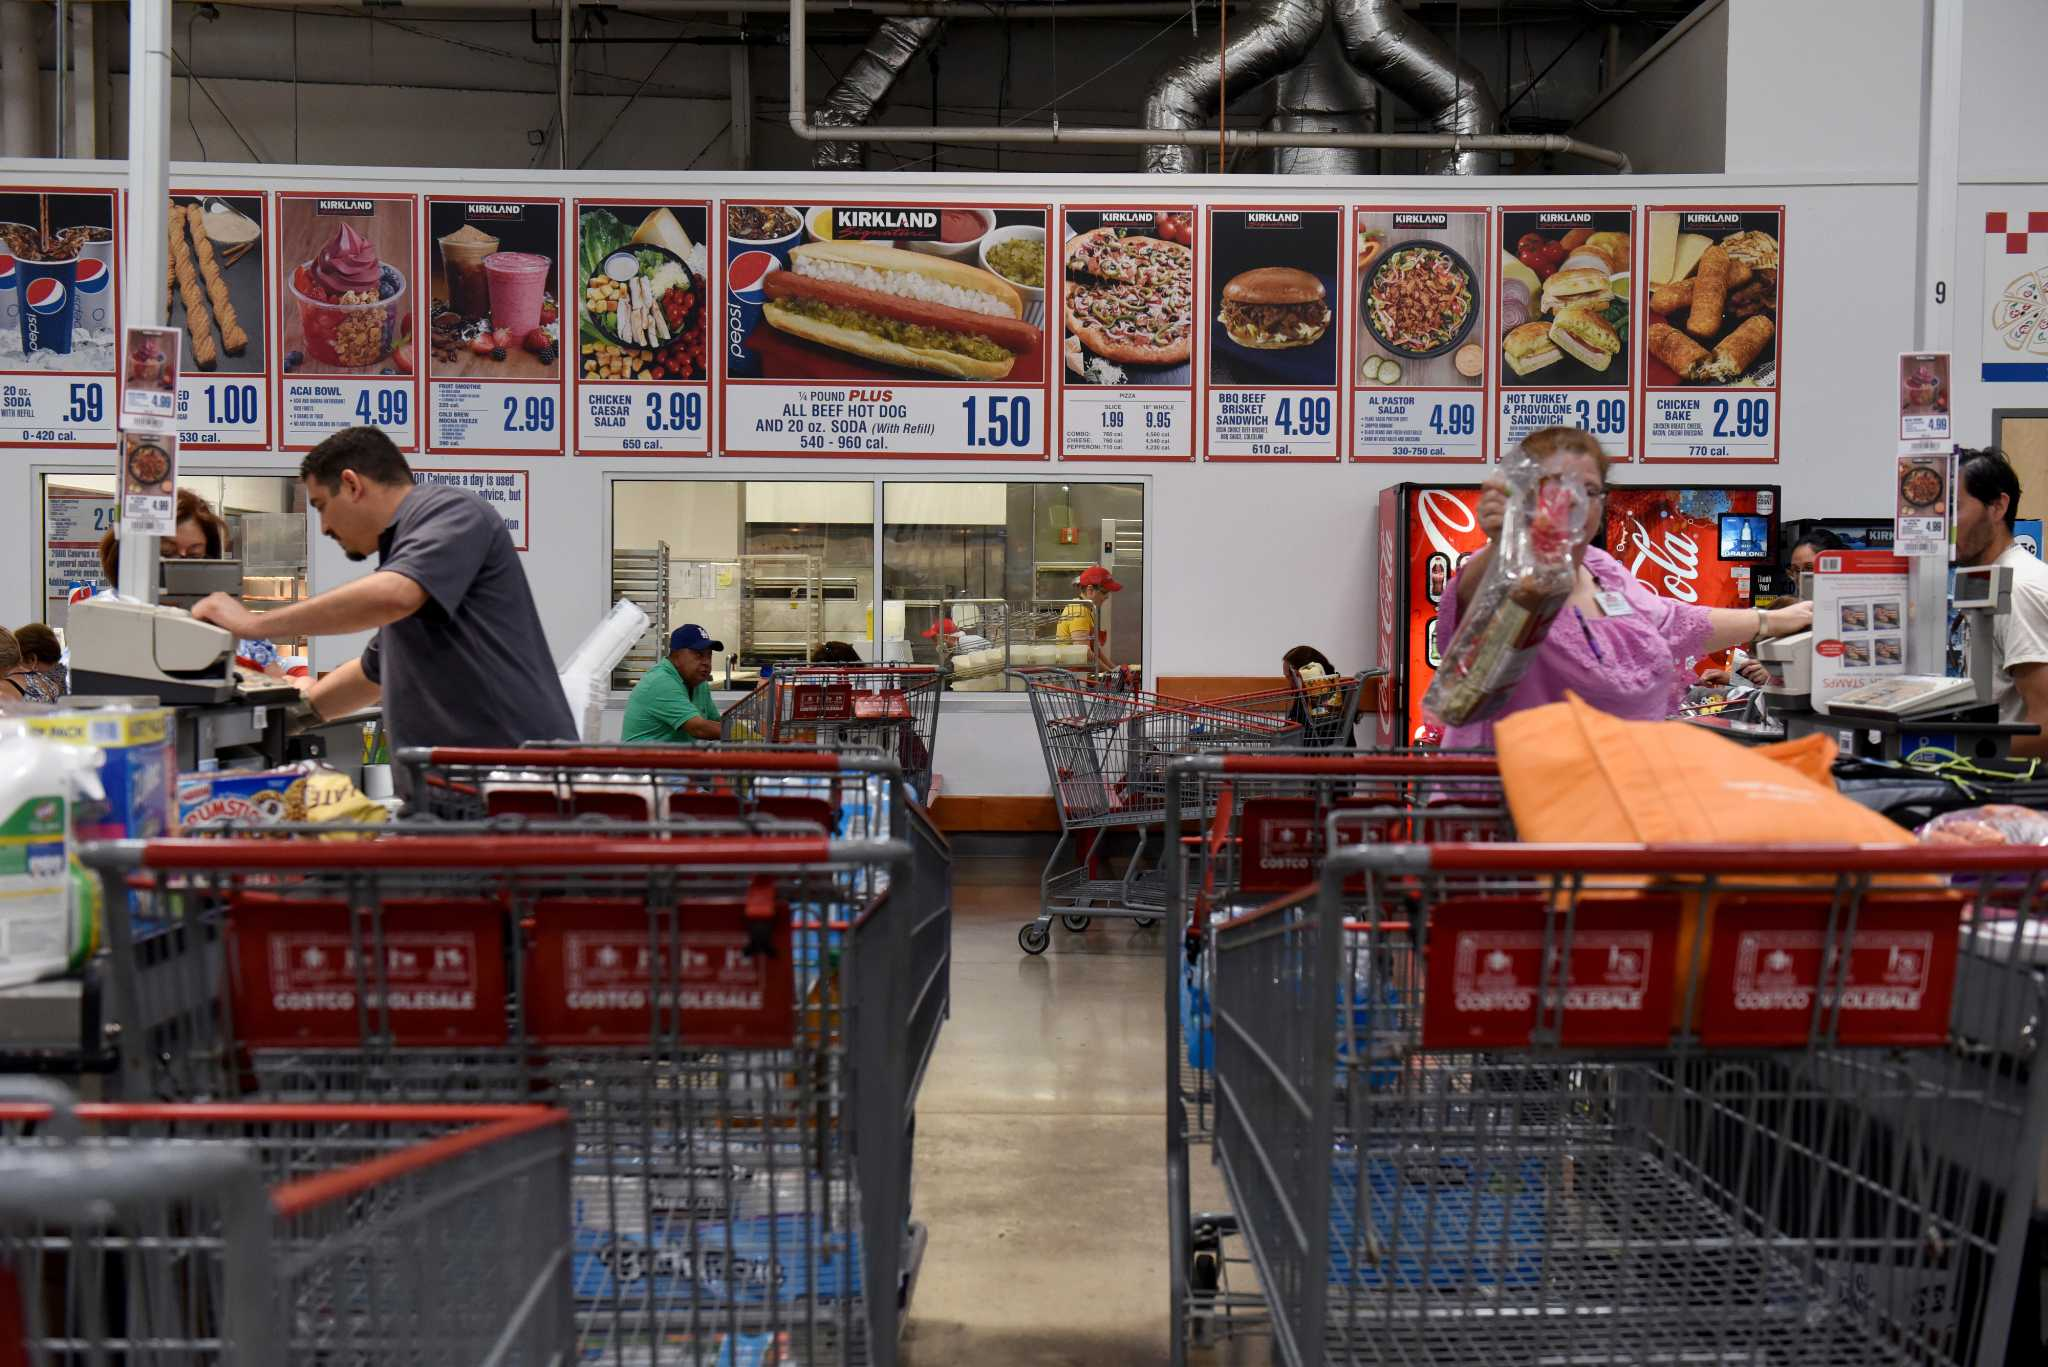 Costco is taking Polish hot dogs off its food court menu